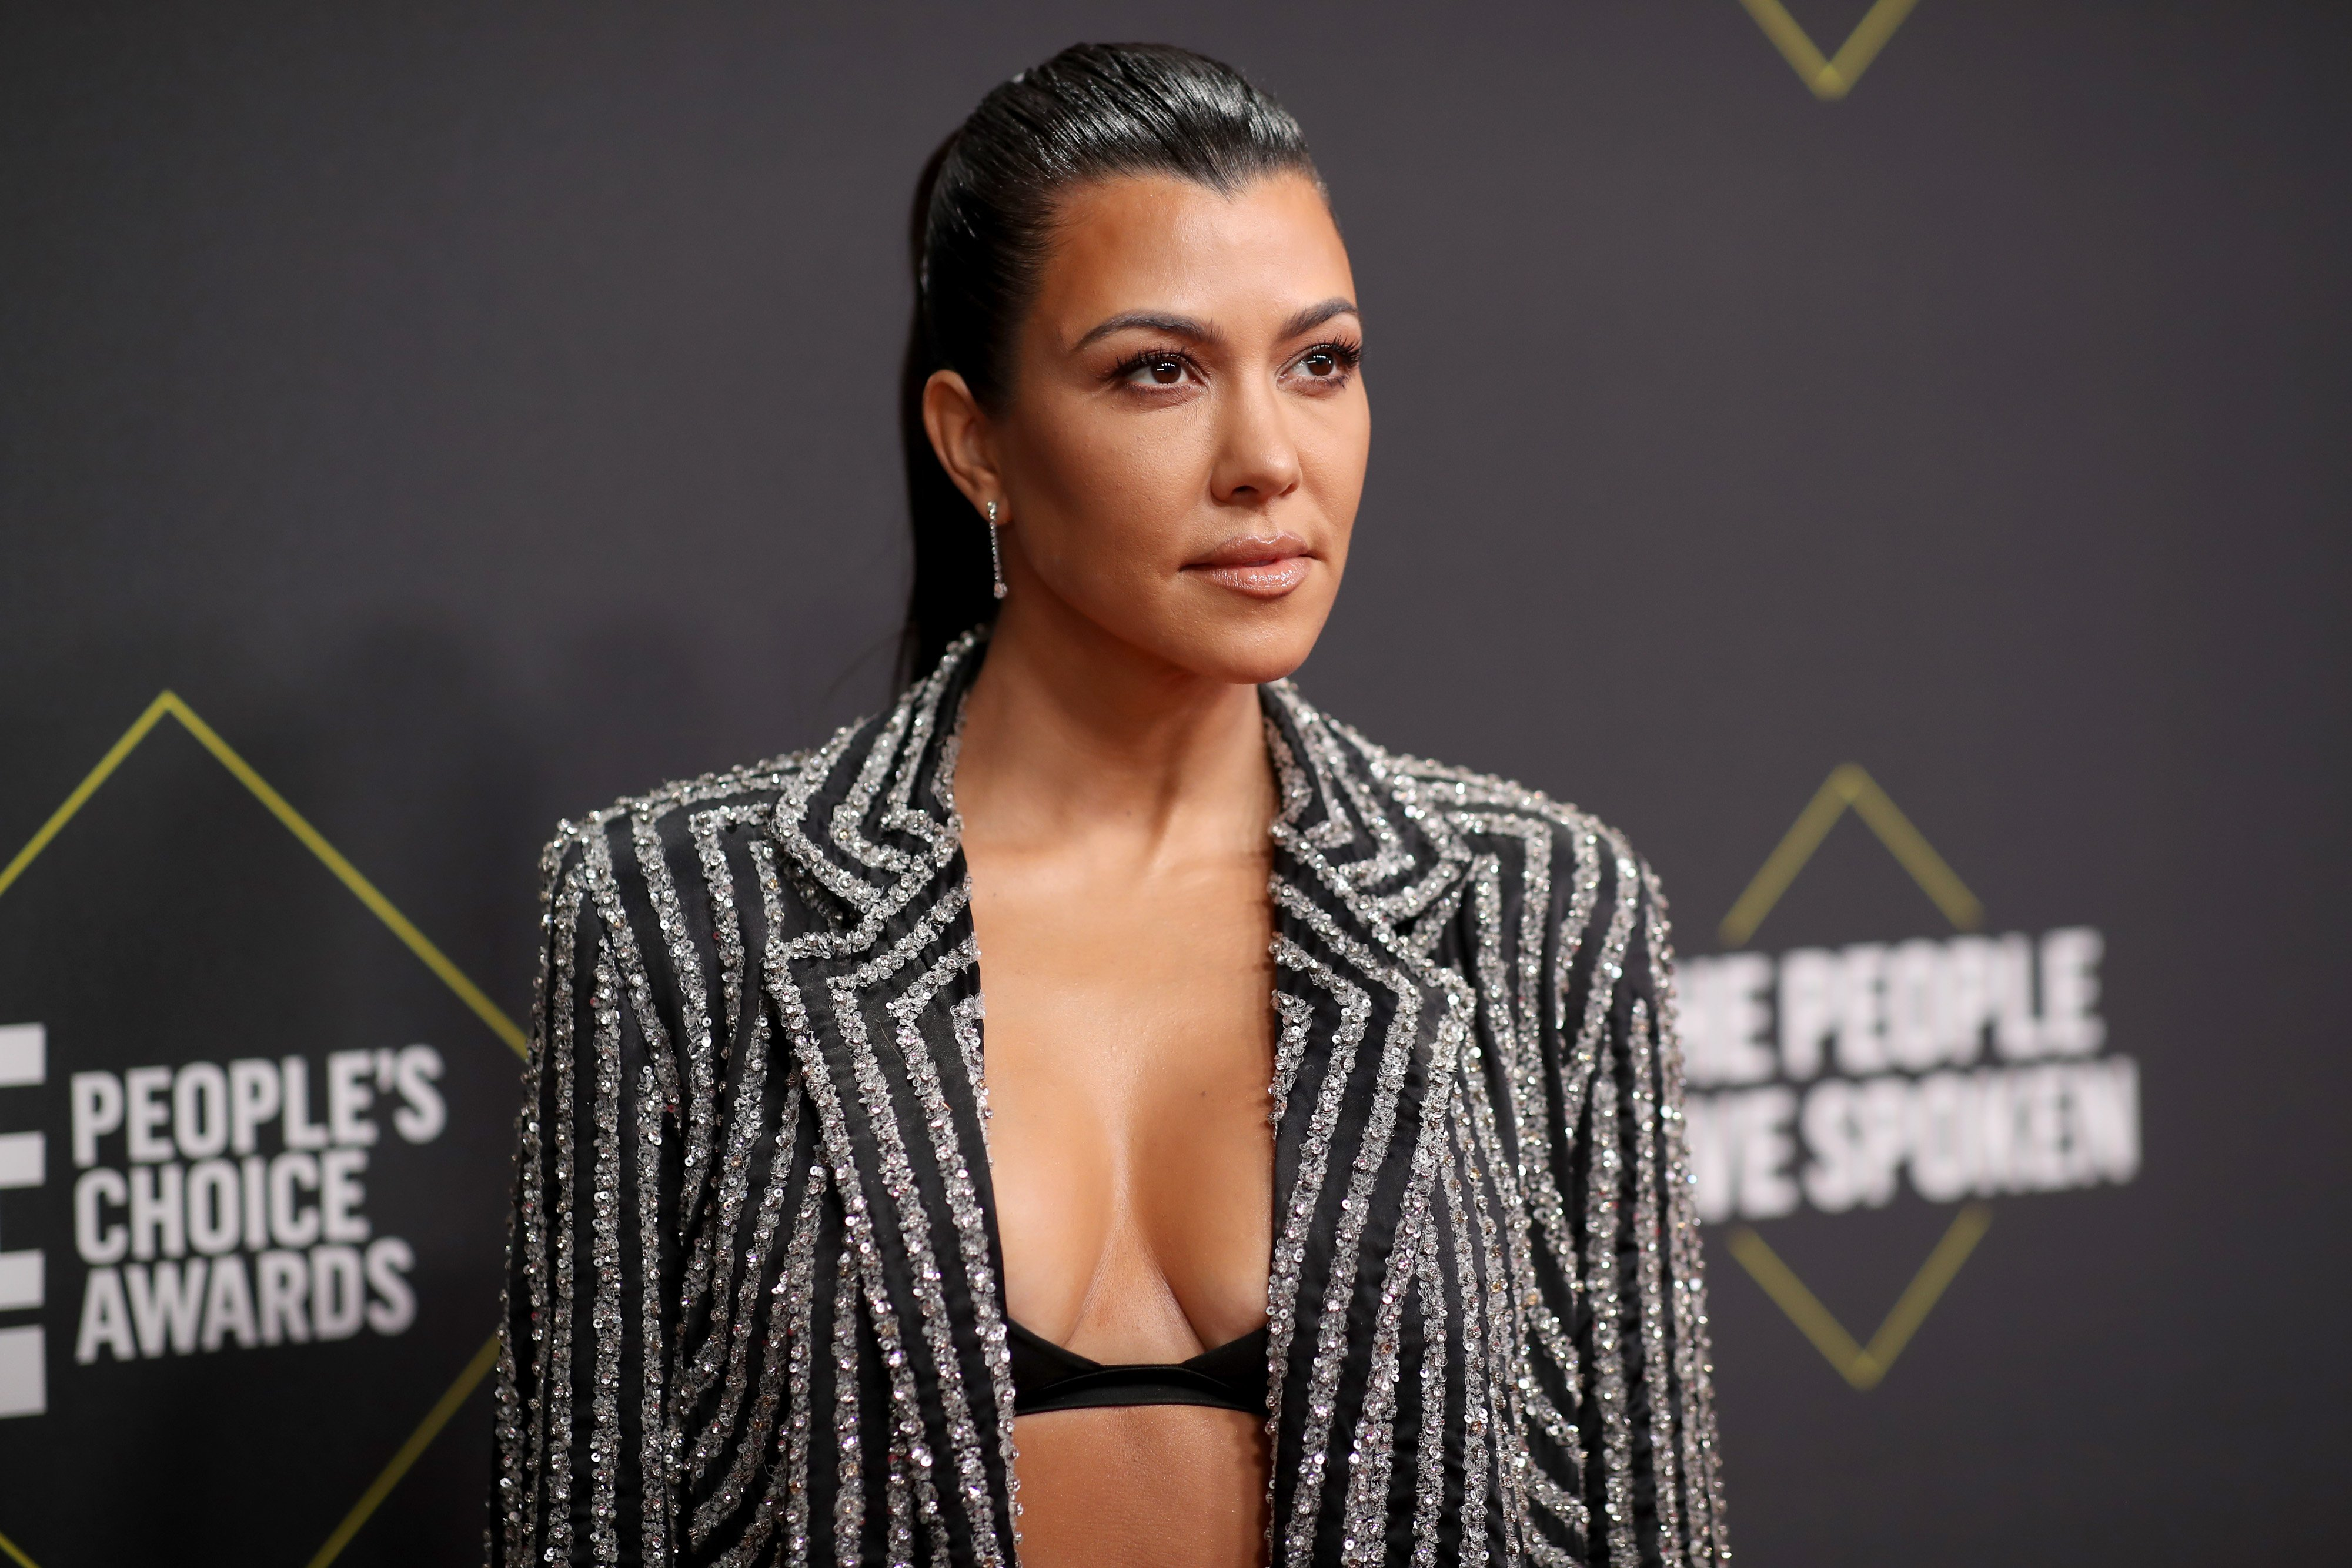 Kourtney Kardashian at the 2019 E! People's Choice Awards at the Barker Hangar on November 10, 2019.  Source: Getty Images